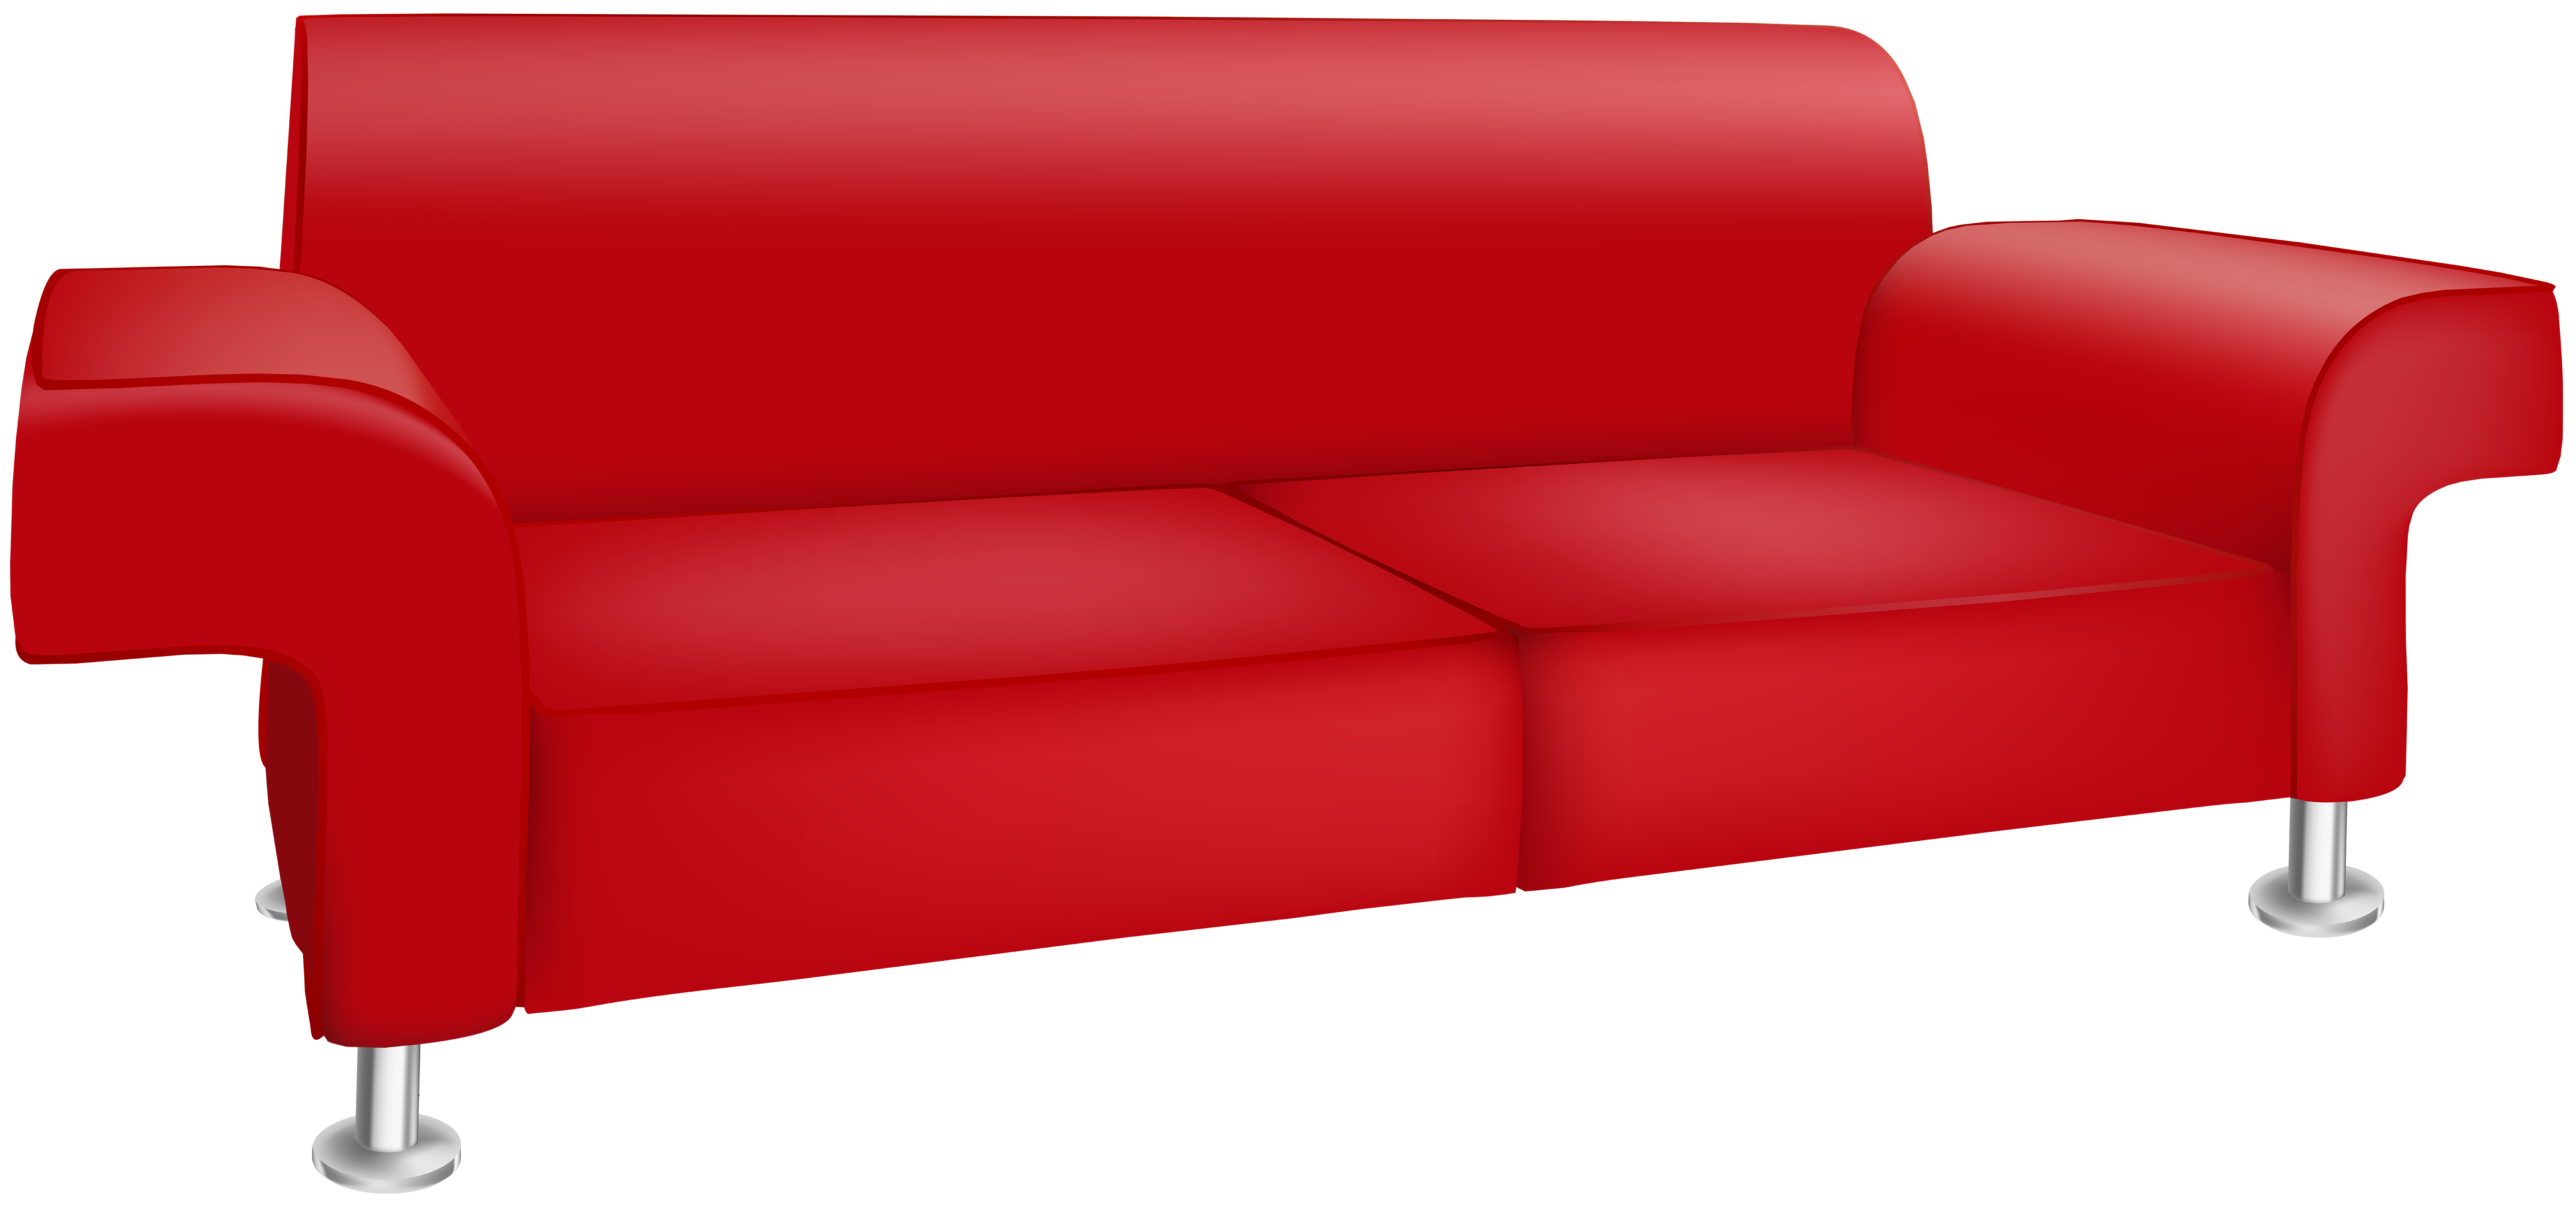 Furniture clipart red couch. Sofa transparent clip art